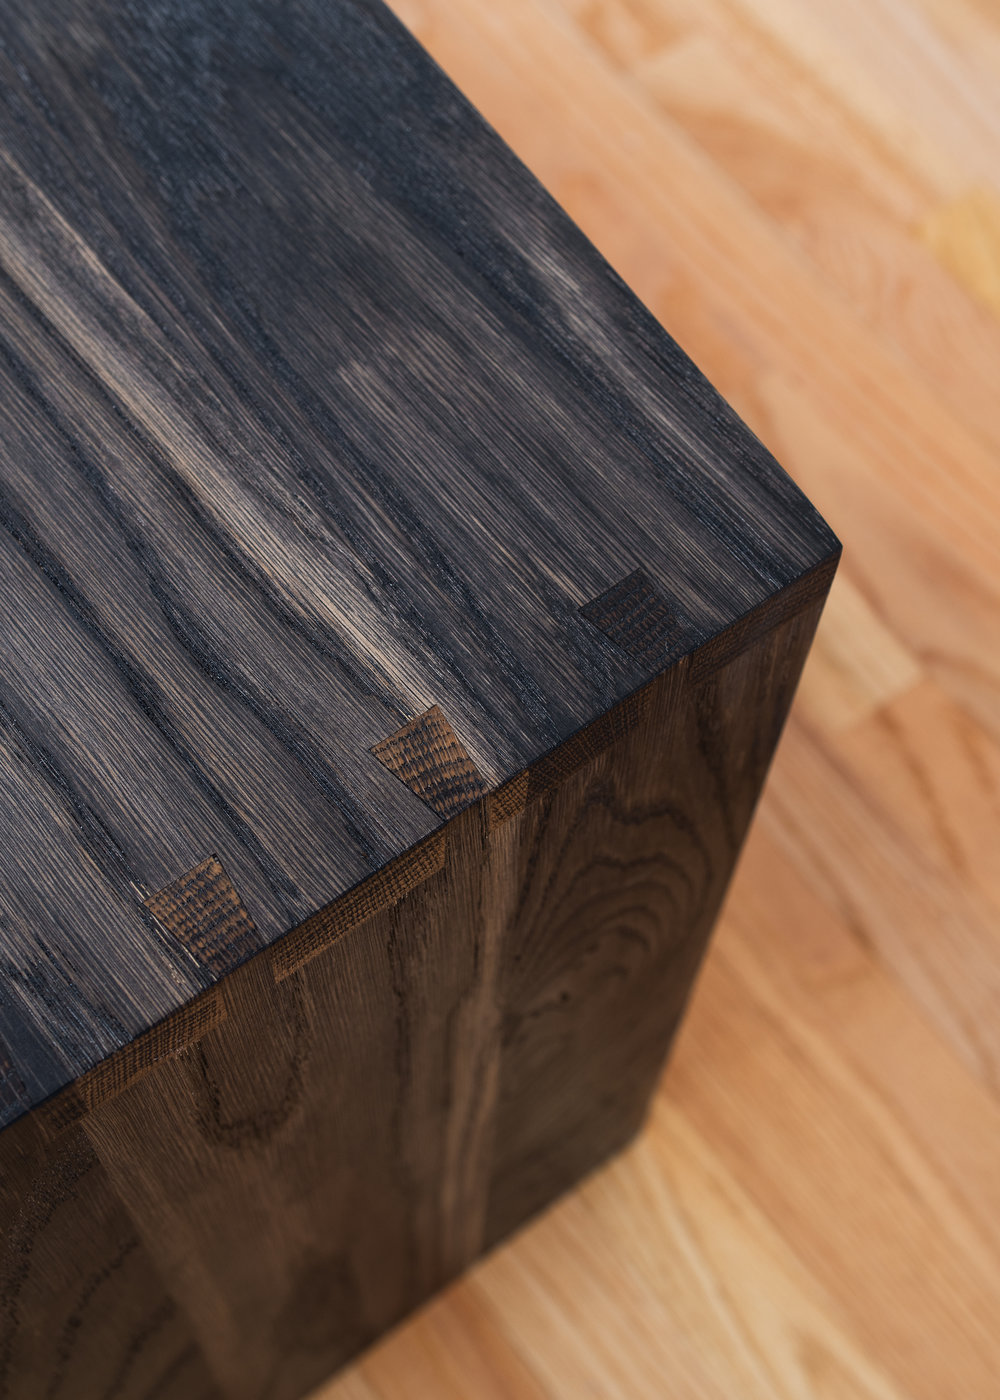 CoffeeTable_BlackOak-2.jpg